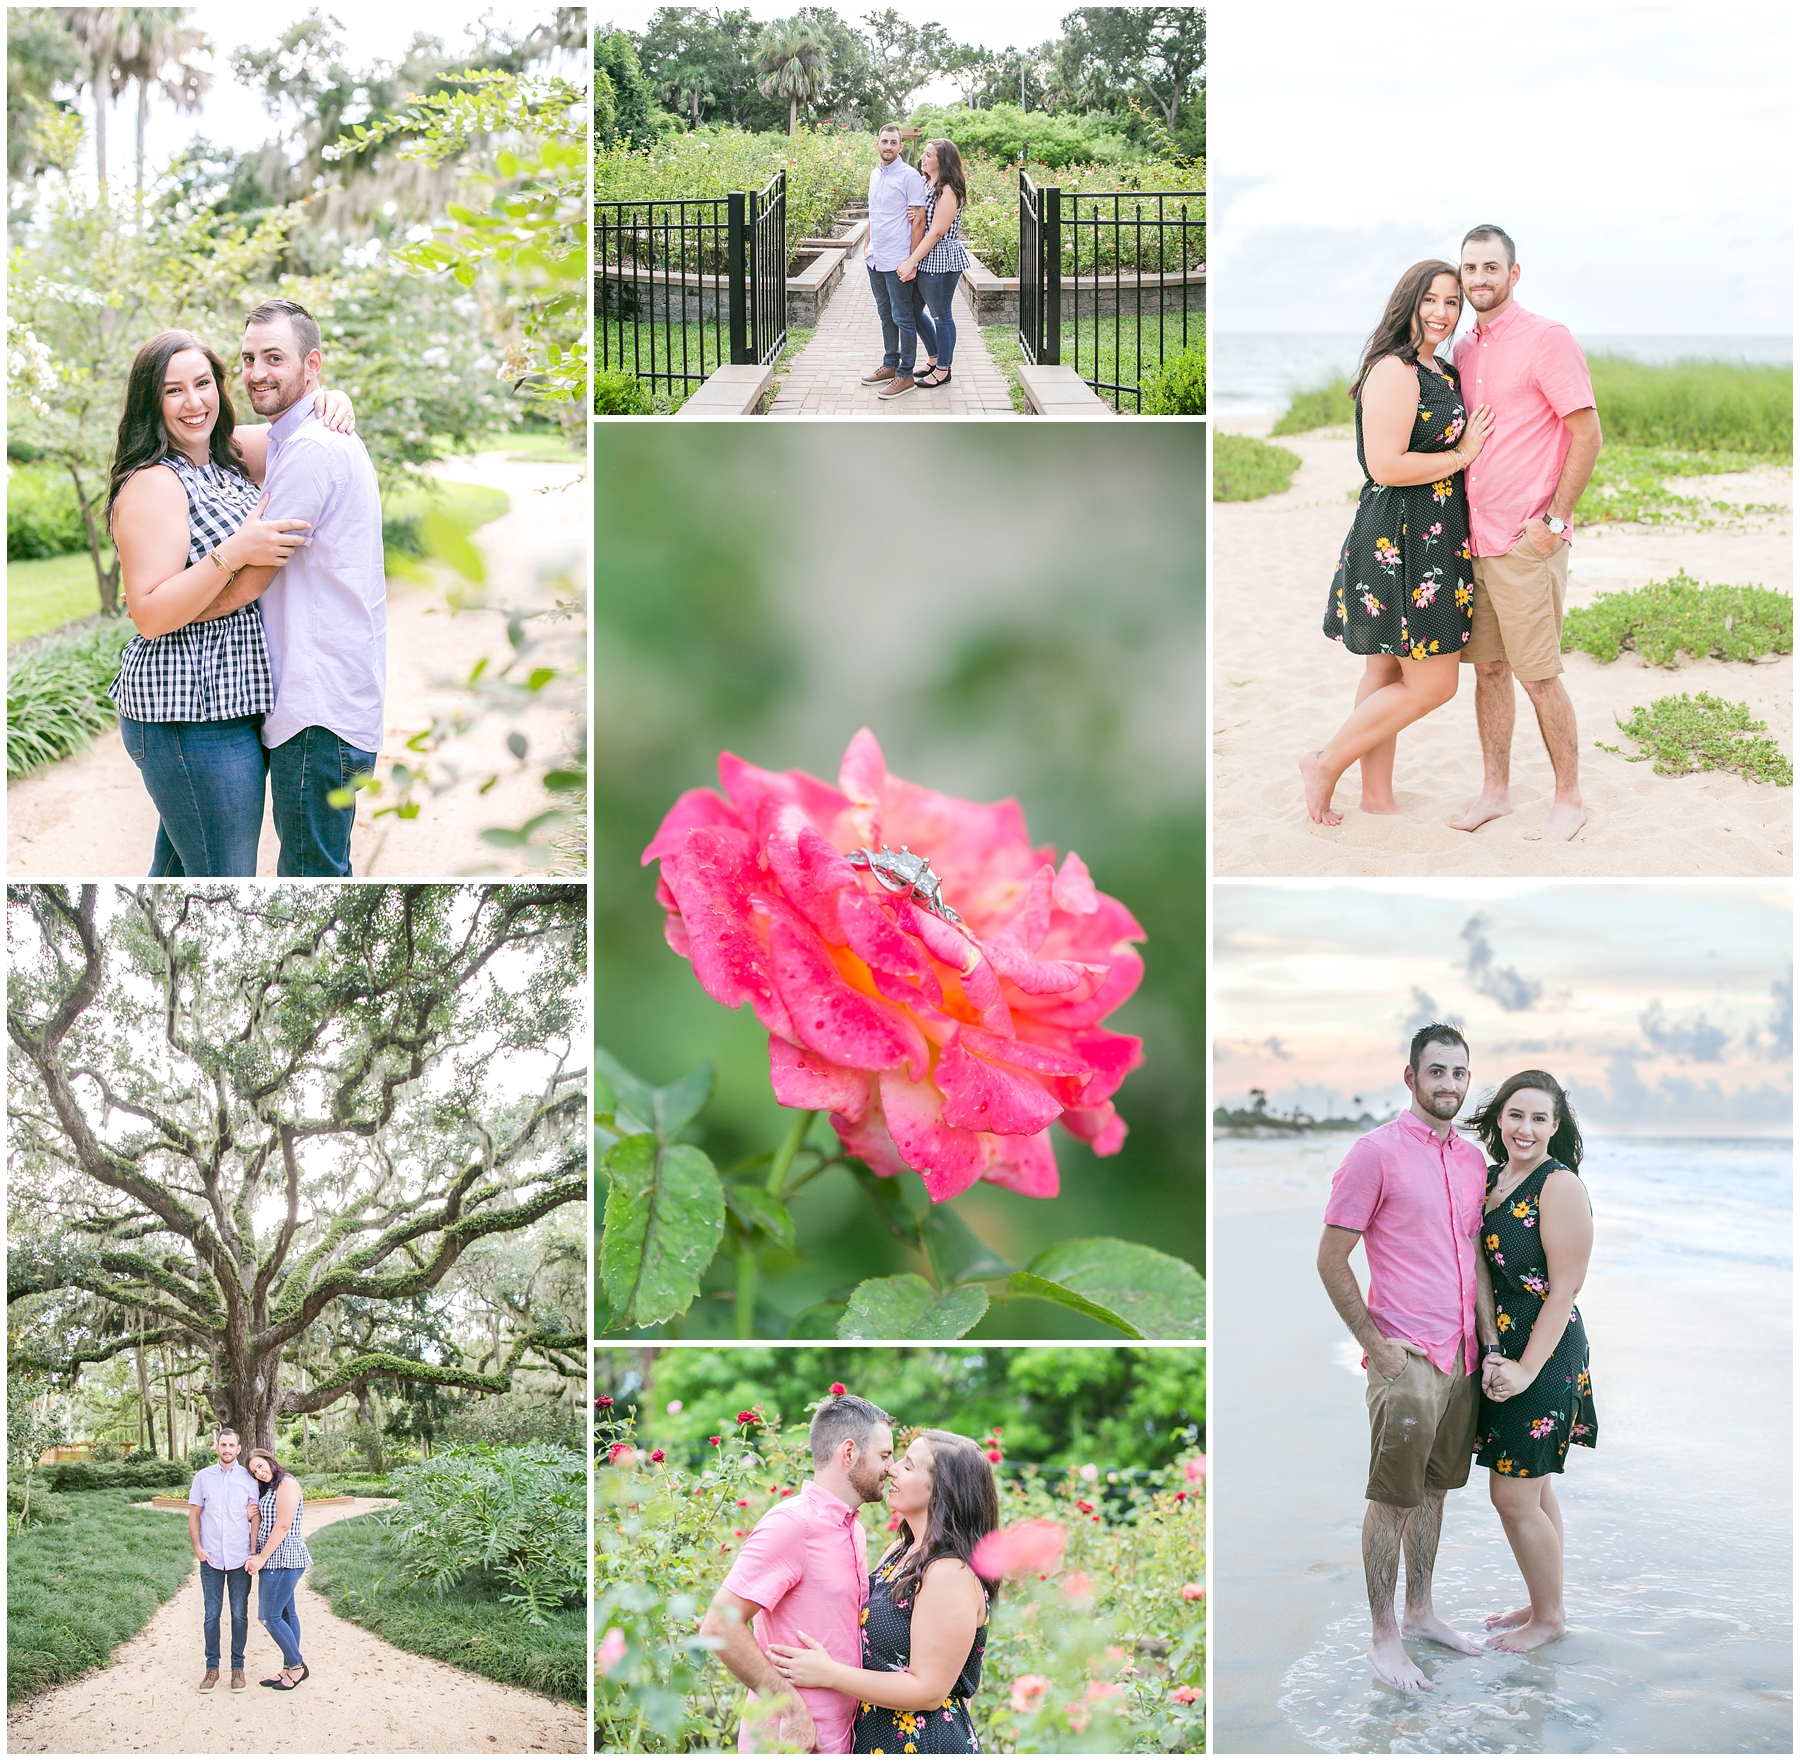 I am obsessed with Samantha + Jeff's engagement session! I had so much fun getting to know them, and I cannot wait for their wedding in two months!